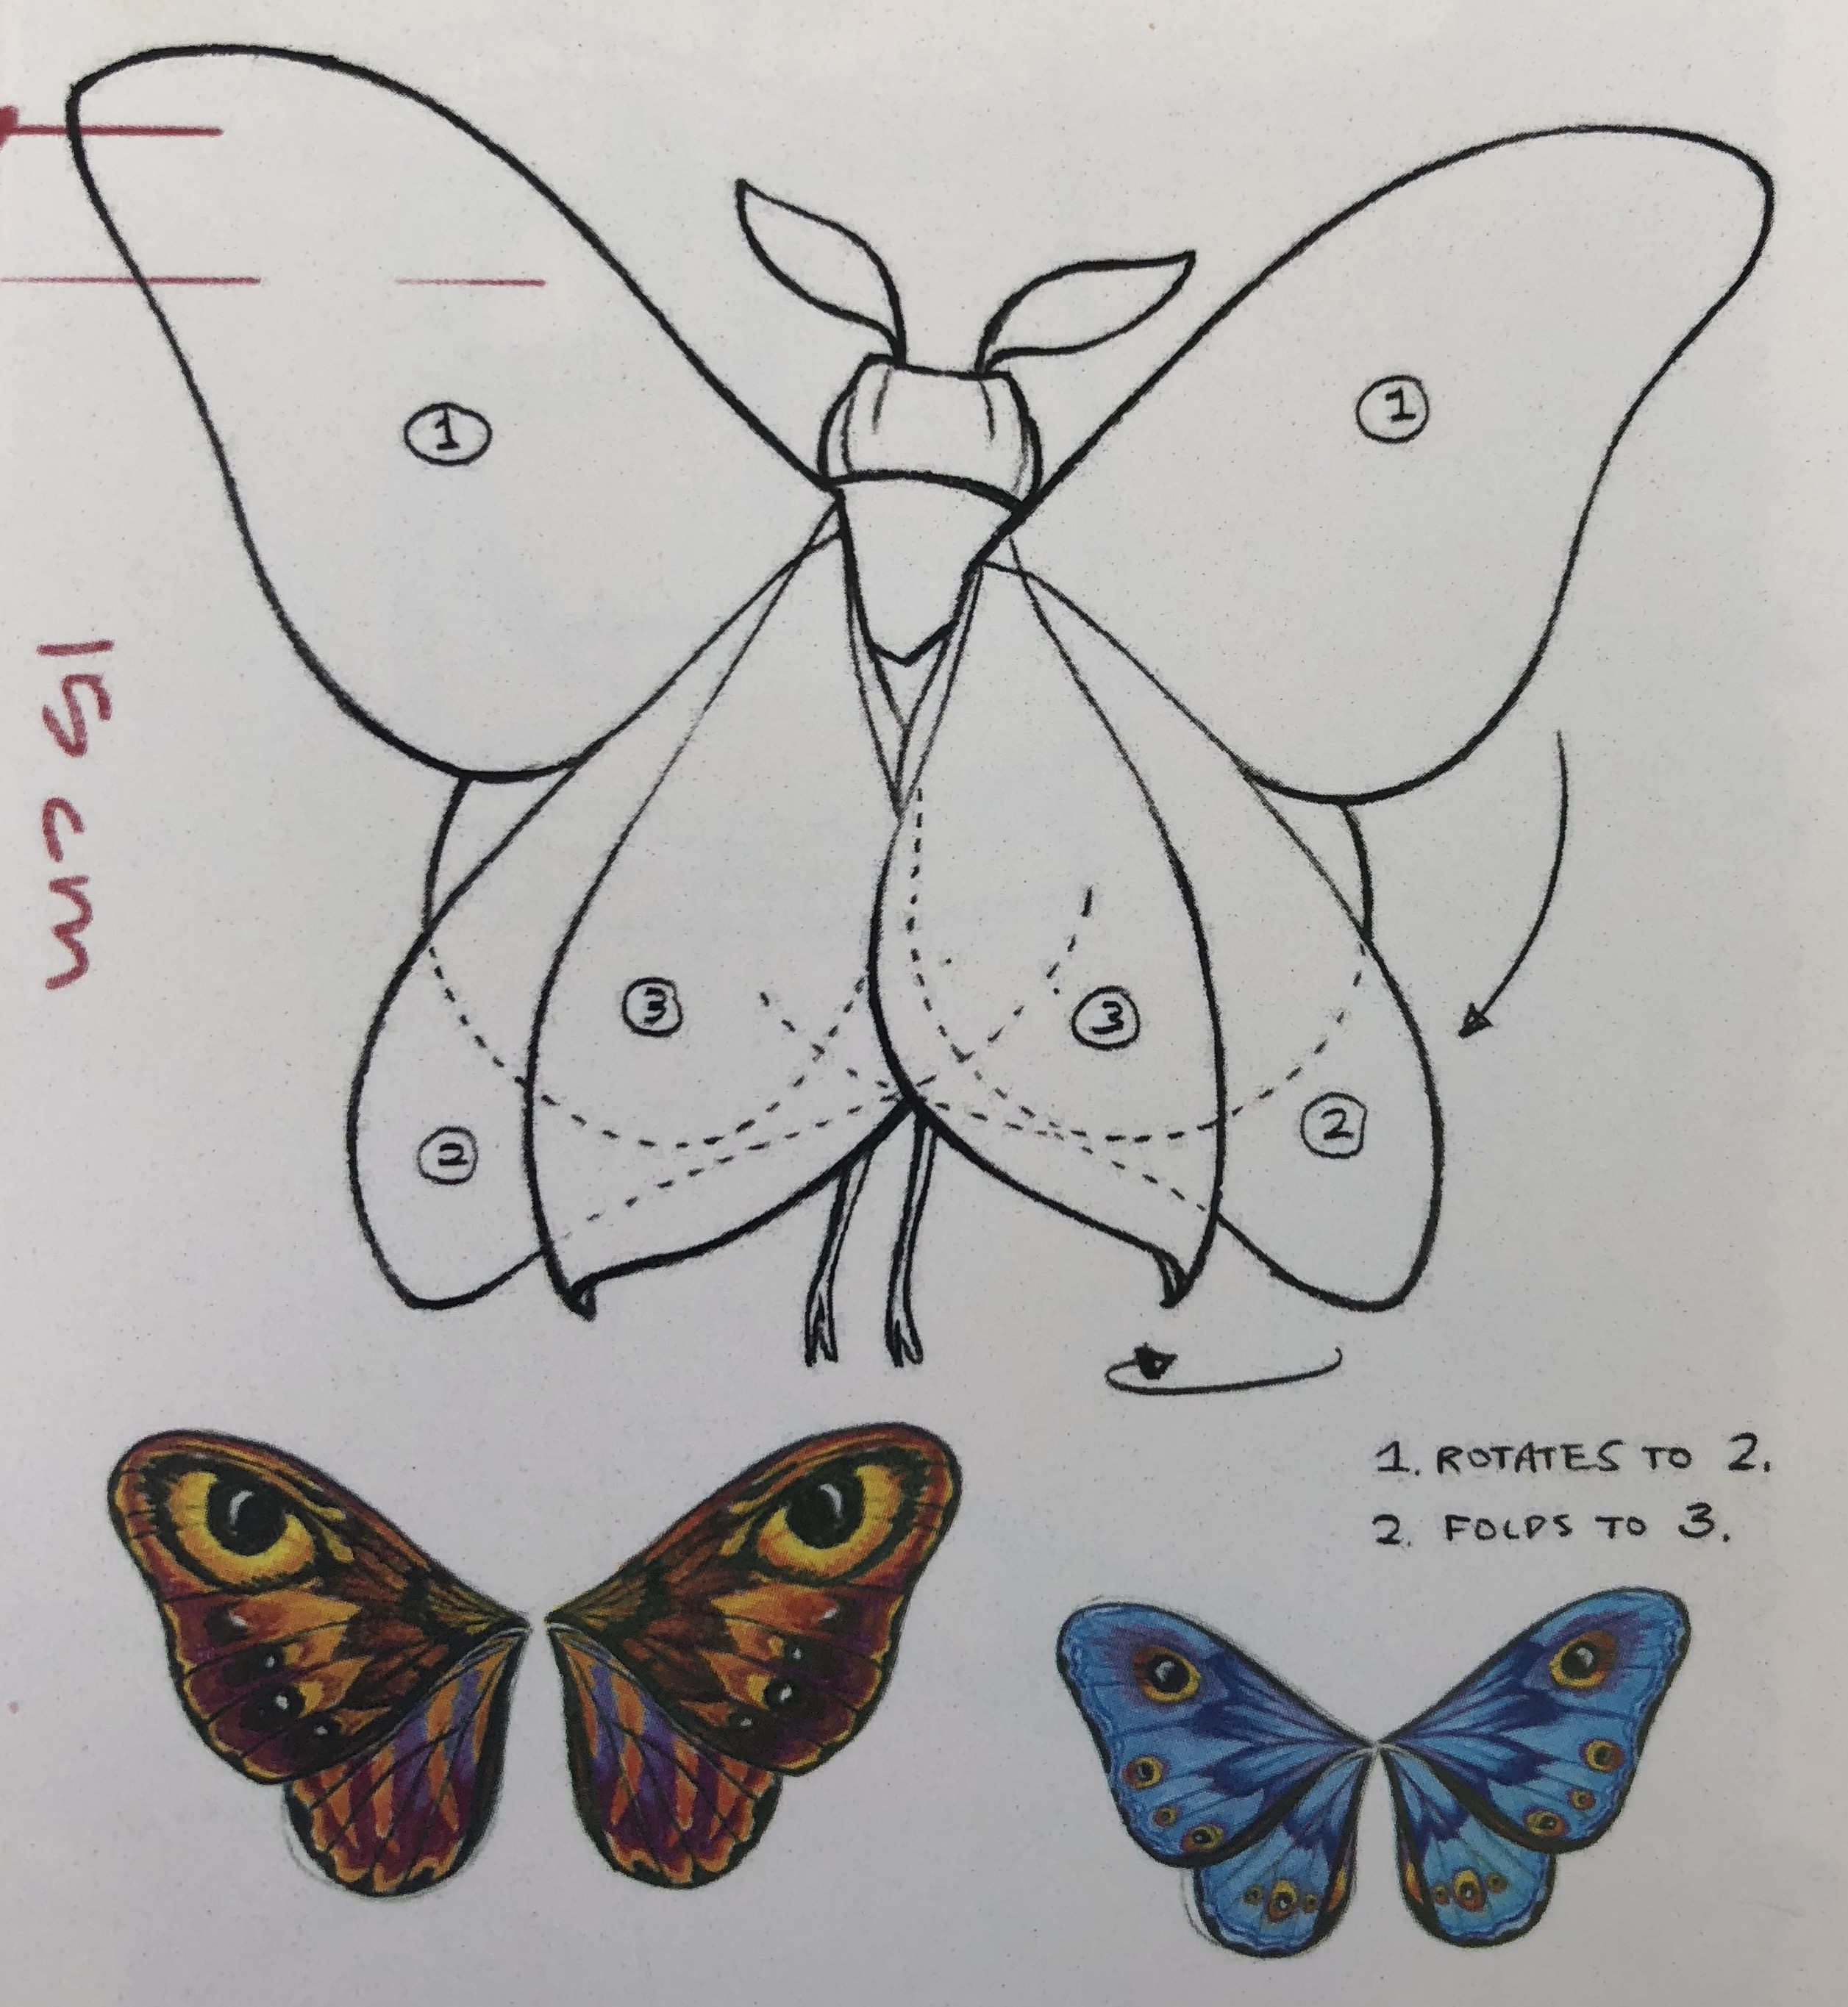 Moth wings concept art from menu at Lamplight Lounge